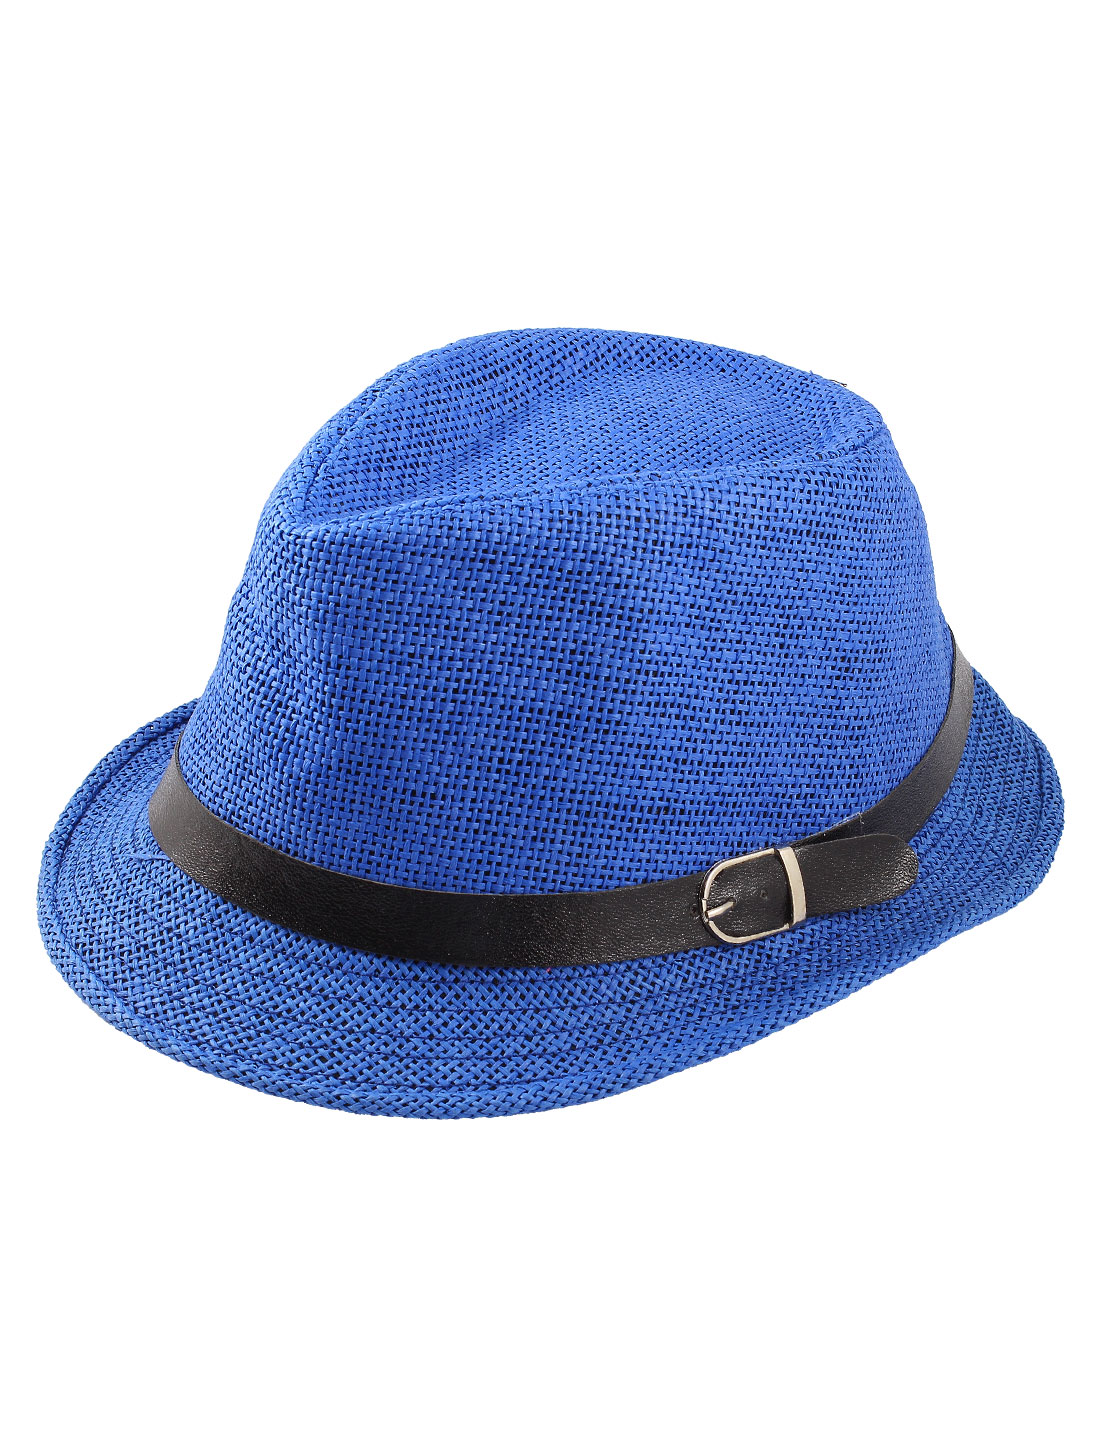 Women Men Faux Leather Belt Decor Straw Fedora Rolled Brim Hat Royal Blue